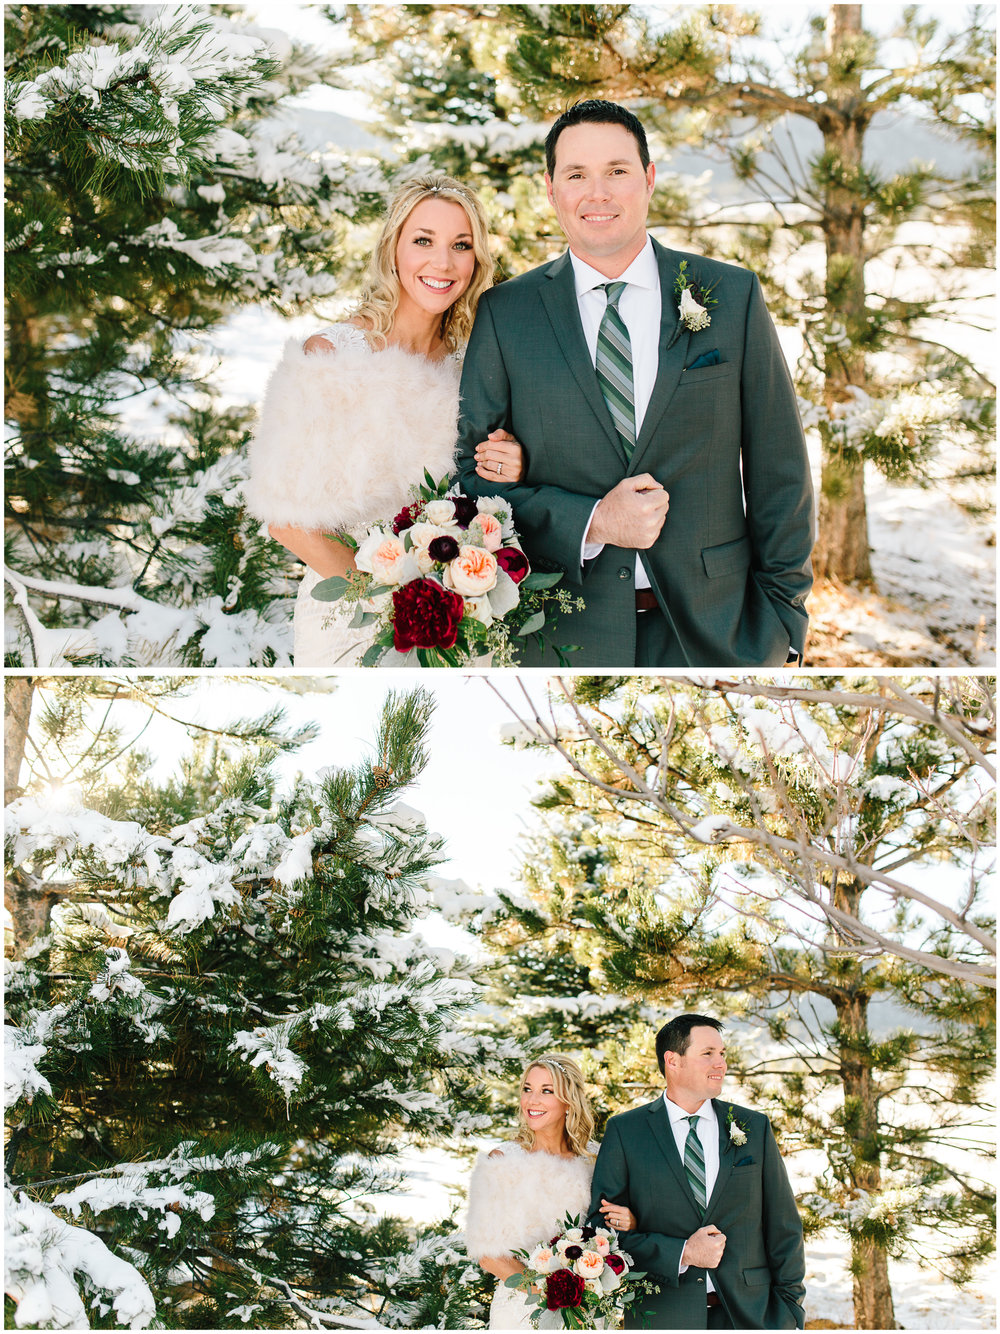 spruce_mountain_ranch_wedding_25.jpg